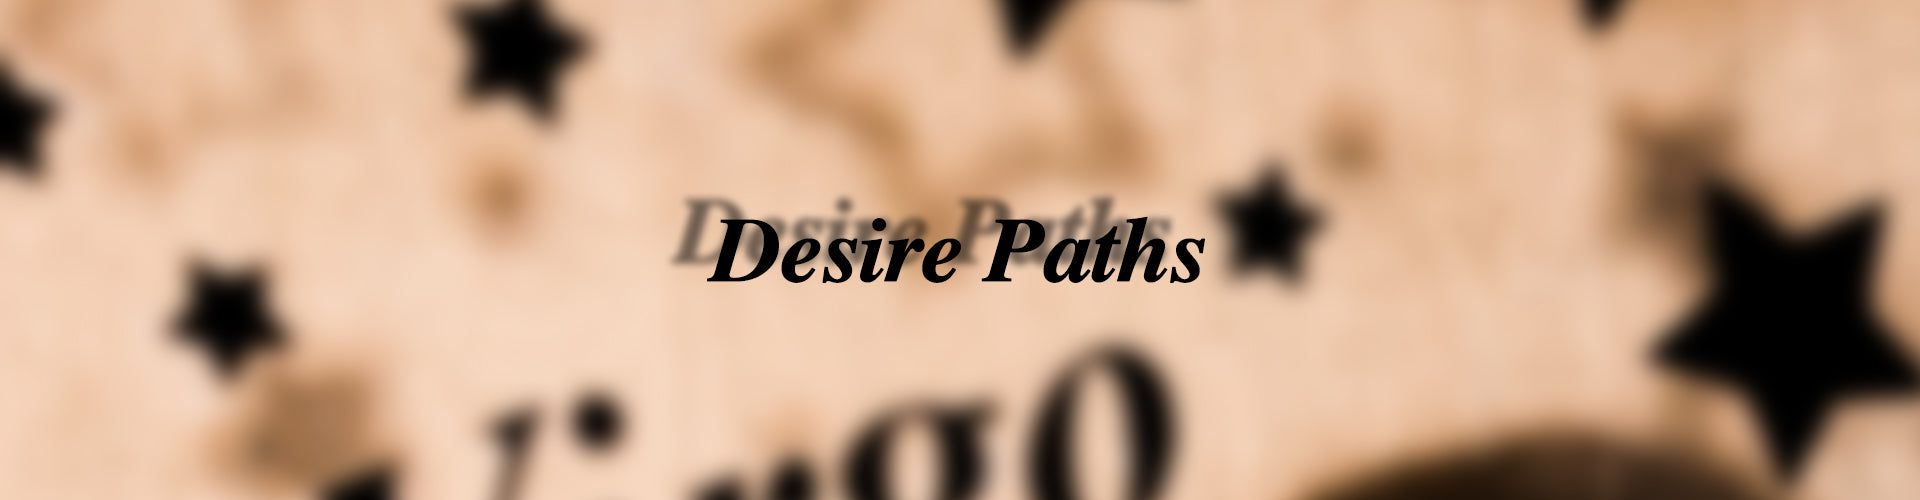 AW20: Desire Paths